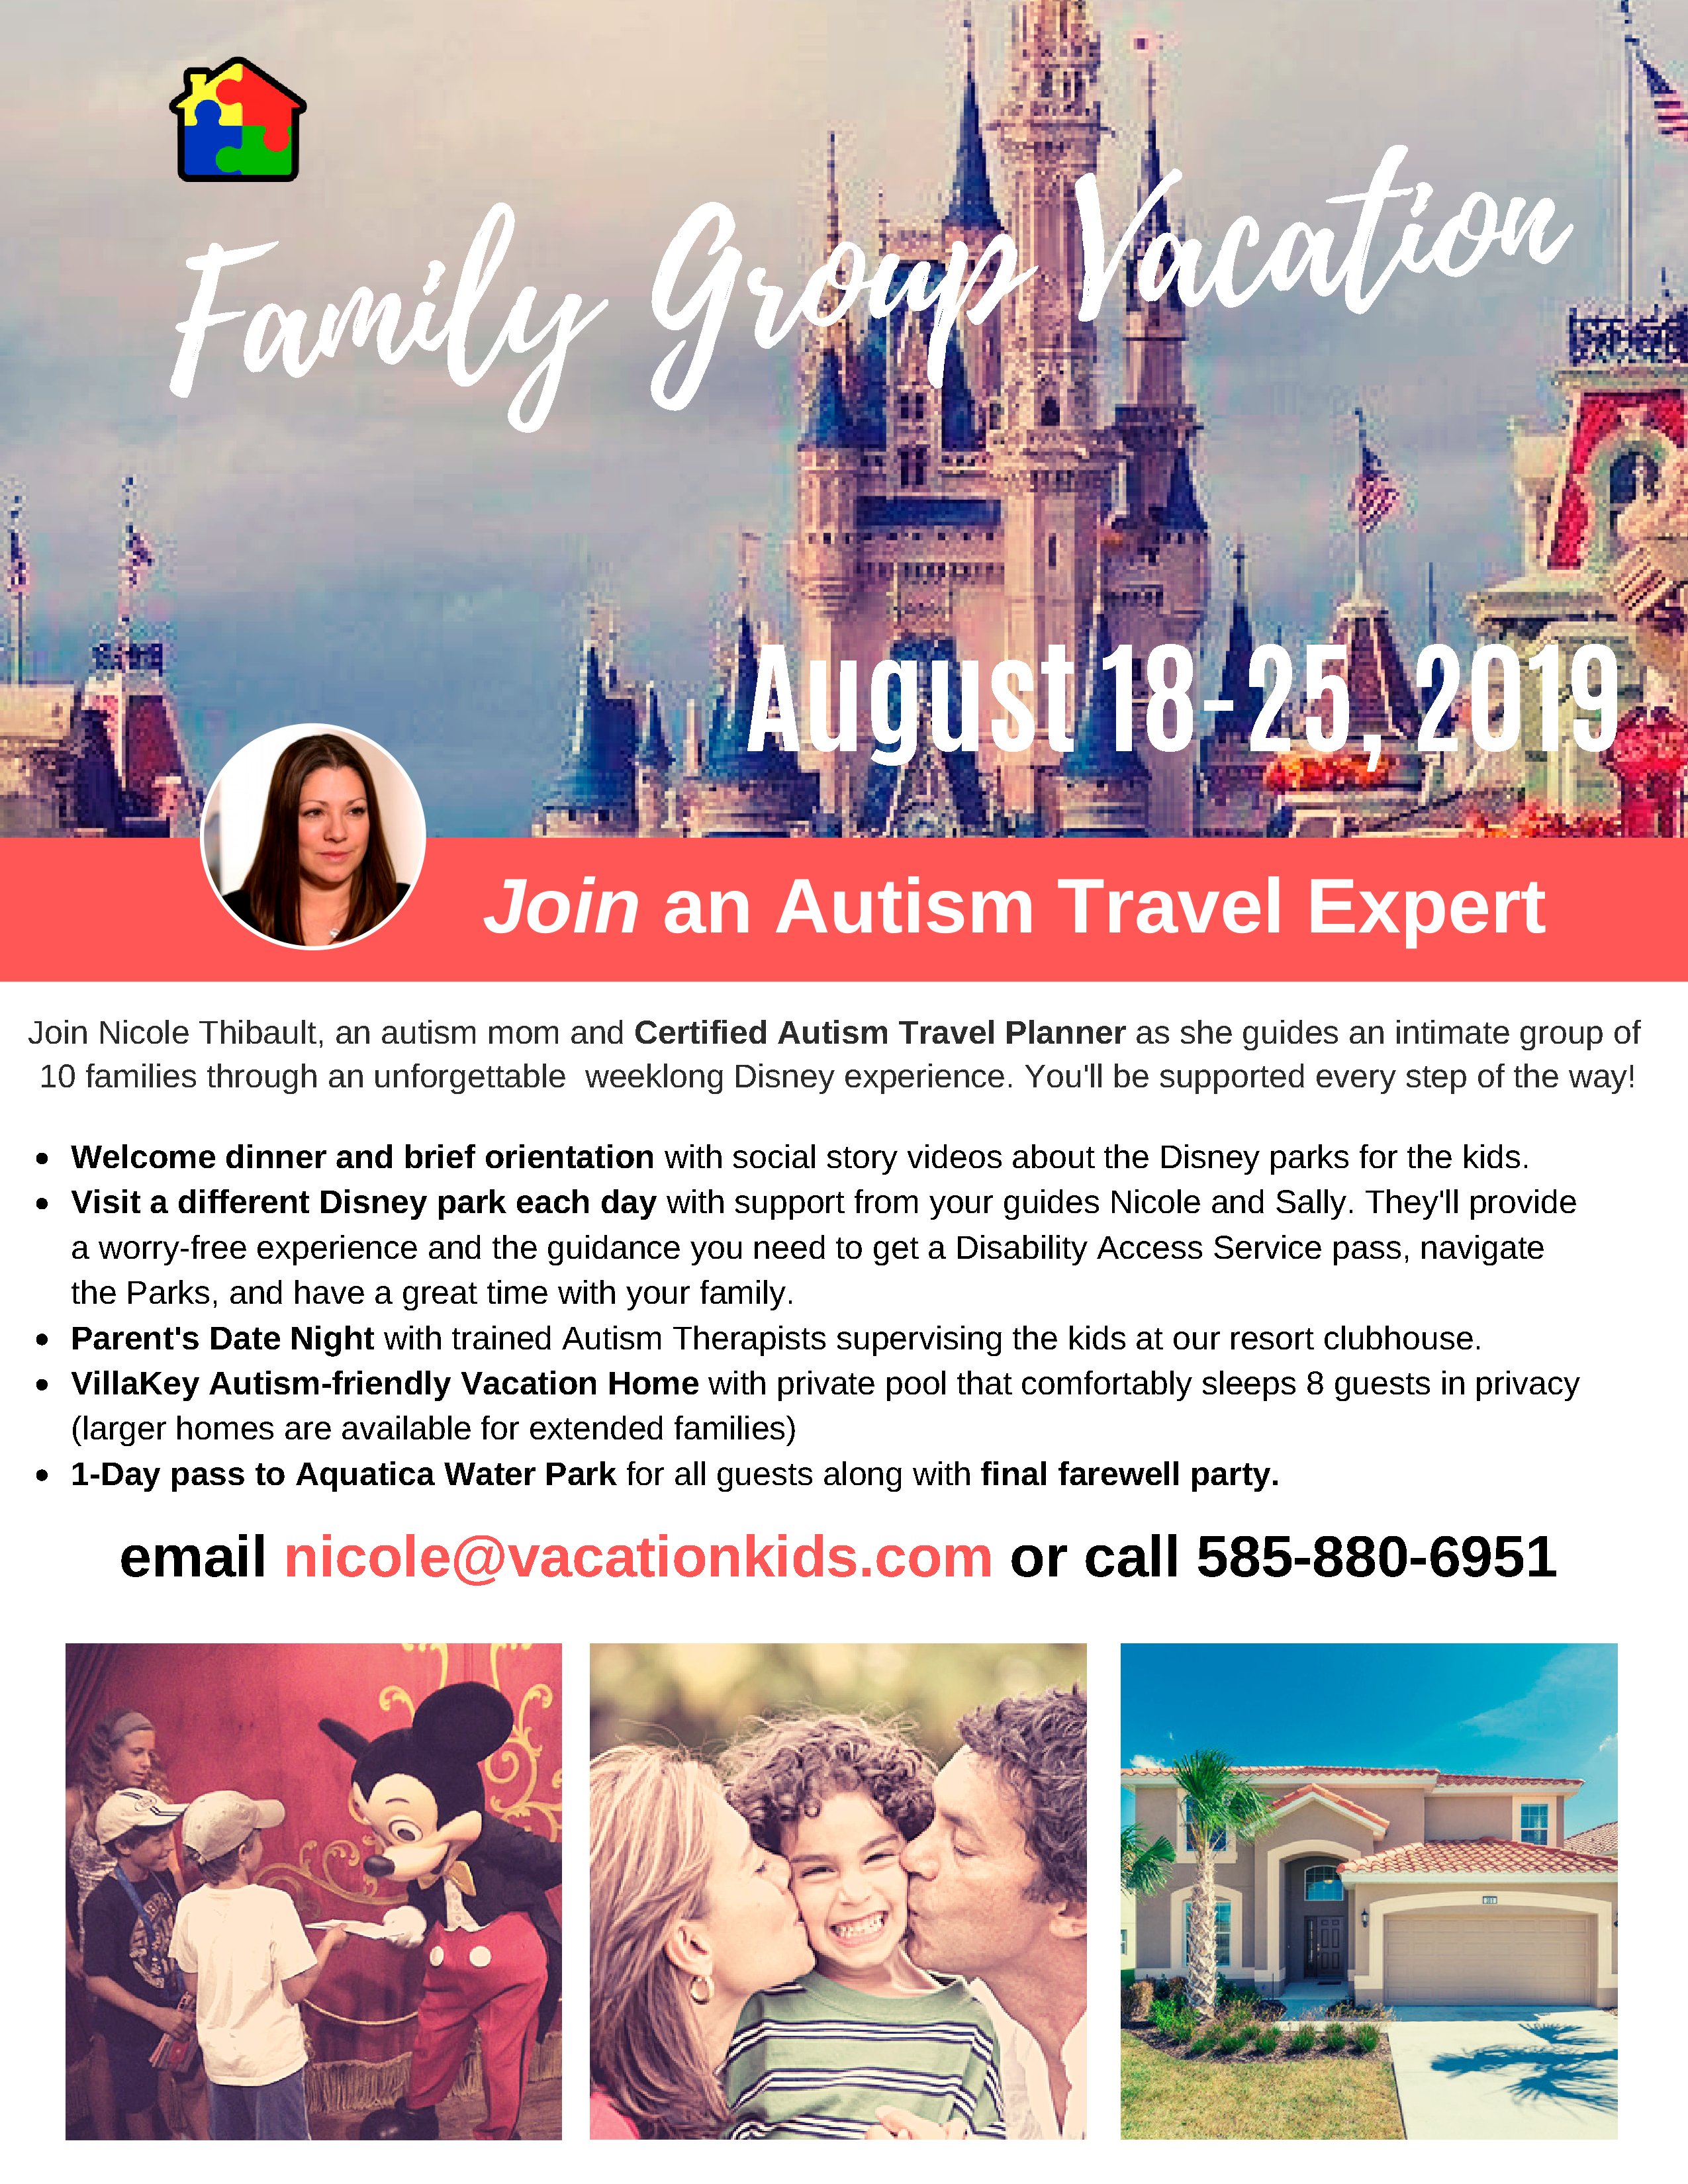 Autism-Friendly Disney Vacation with VillaKey